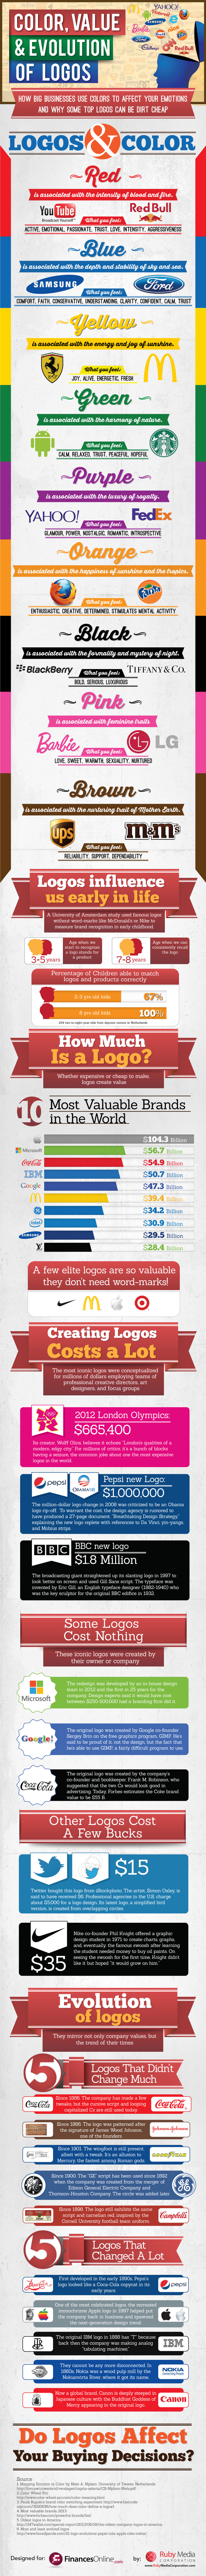 How Famous Companies Like Microsoft & Coca Cola Design Use Color In Their Logos